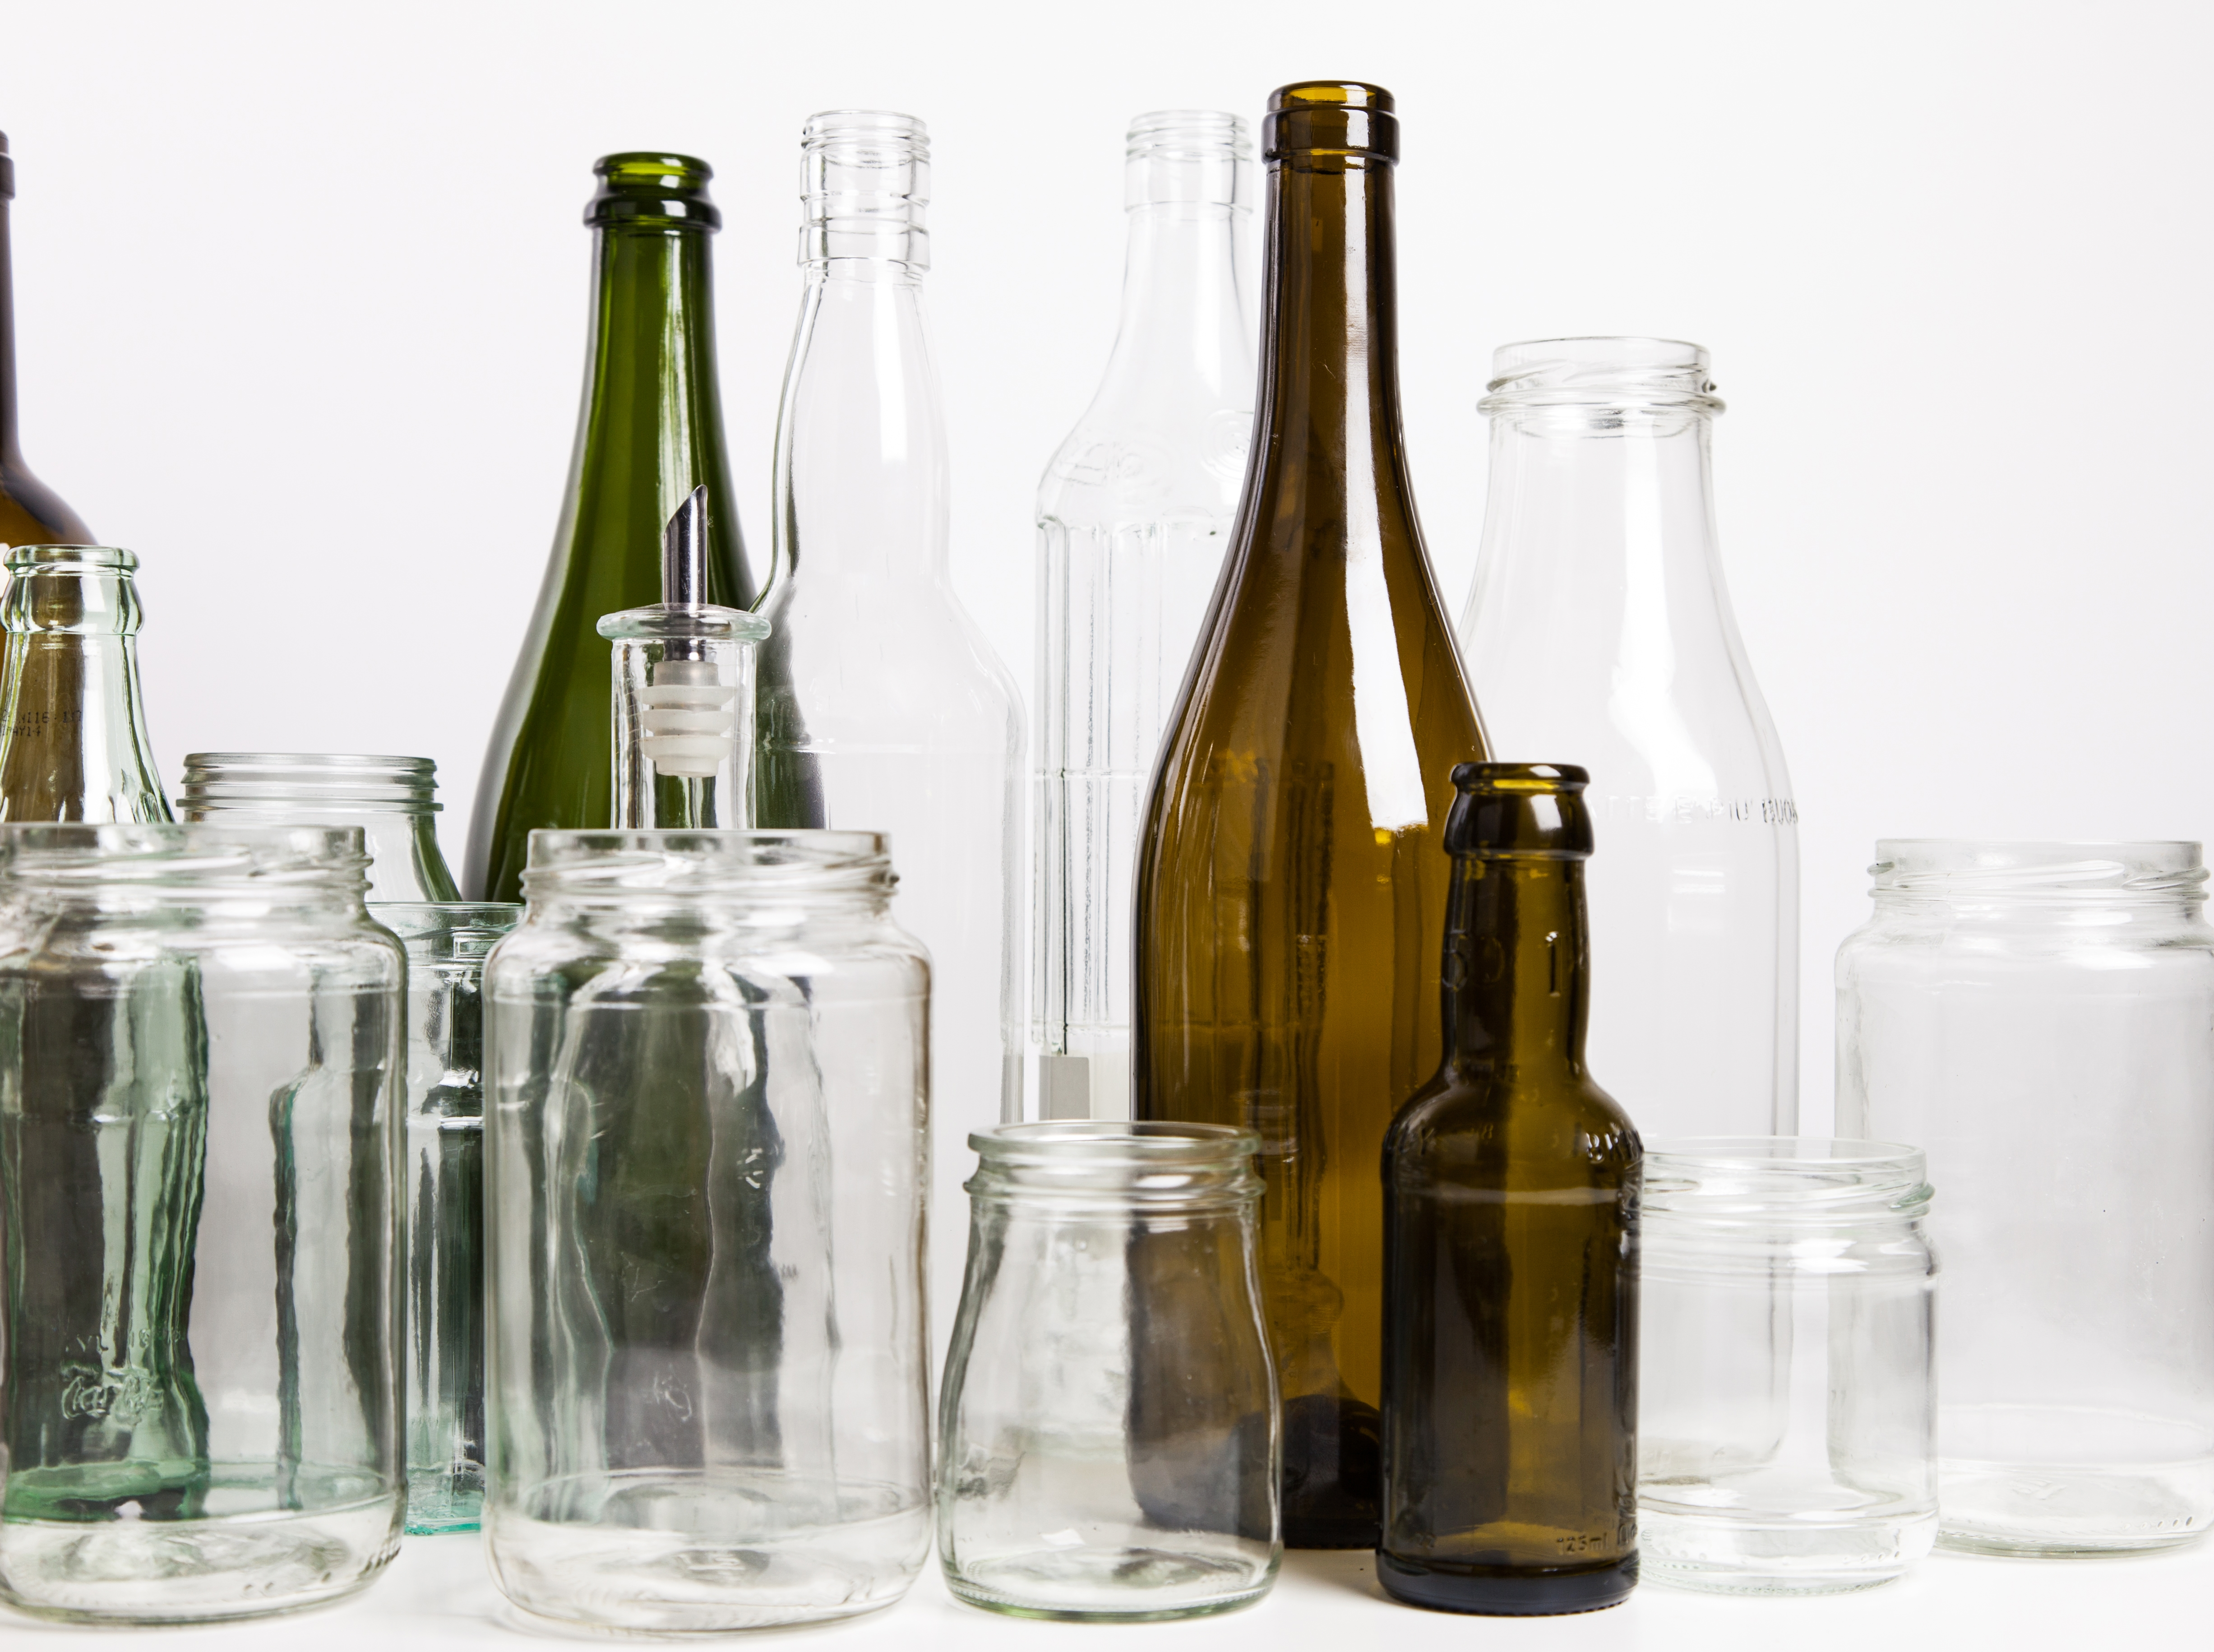 Glass collection rates across Europe have risen to a record 76%